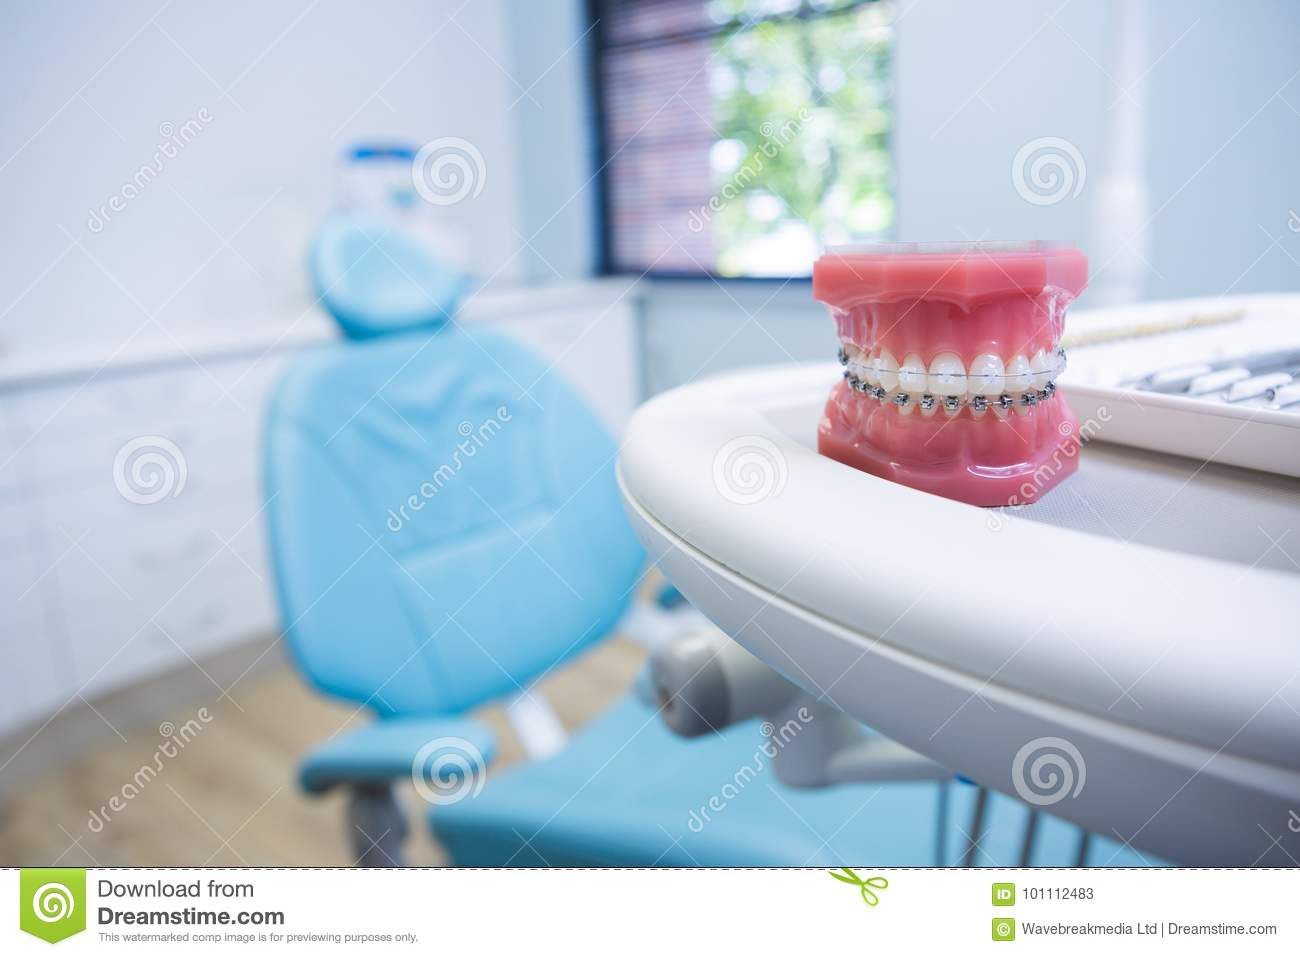 Dental Mold On Table By Chair Stock Image - Image of tool, chair ...